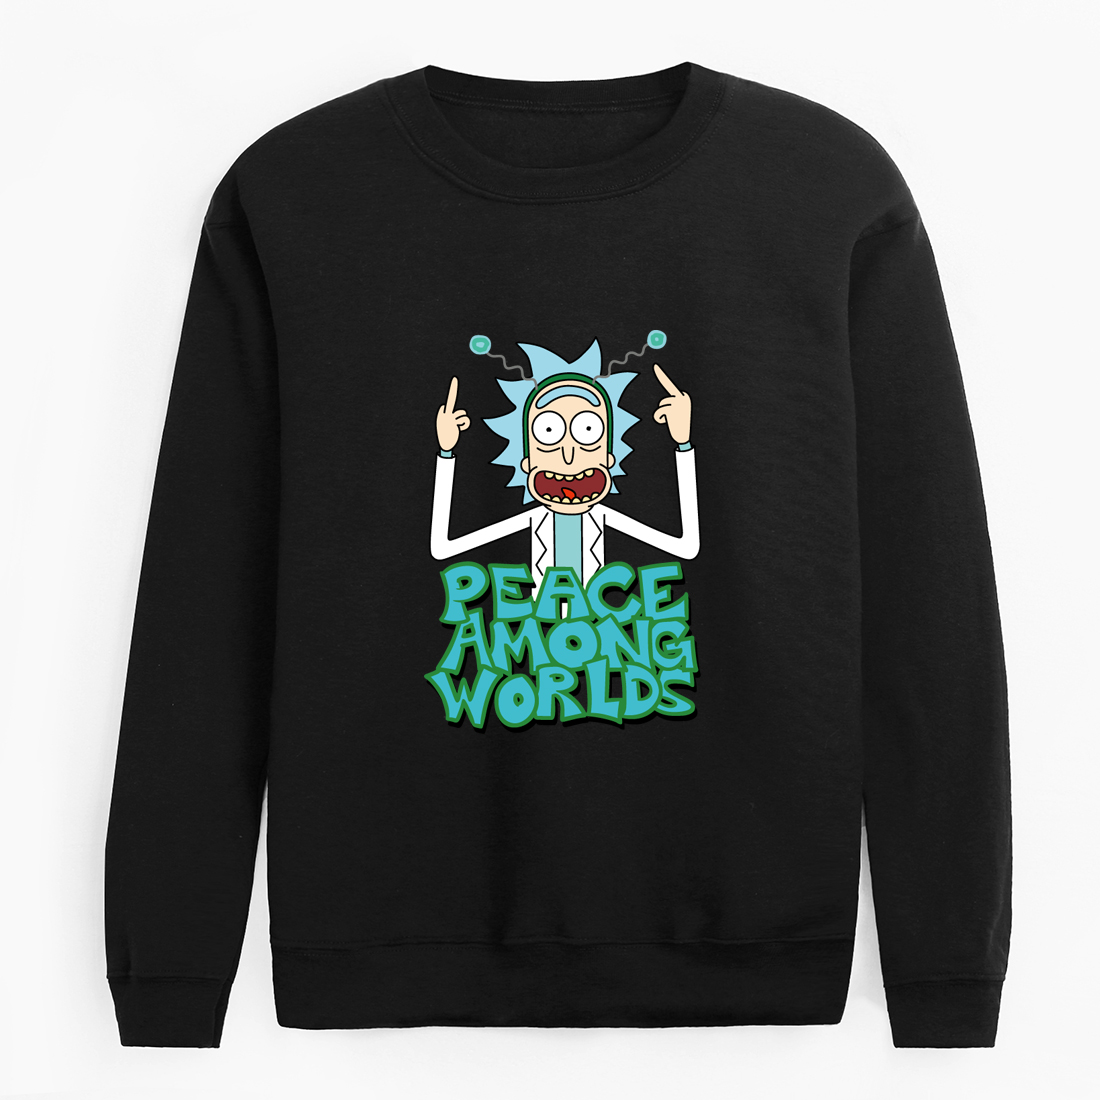 New Design Rick And Morty Mens Hoodies Cotton Funny Print Hoodie Man Fashion Rick Morty Casual Hoodie Sweatshirt Tops 2019 Autum